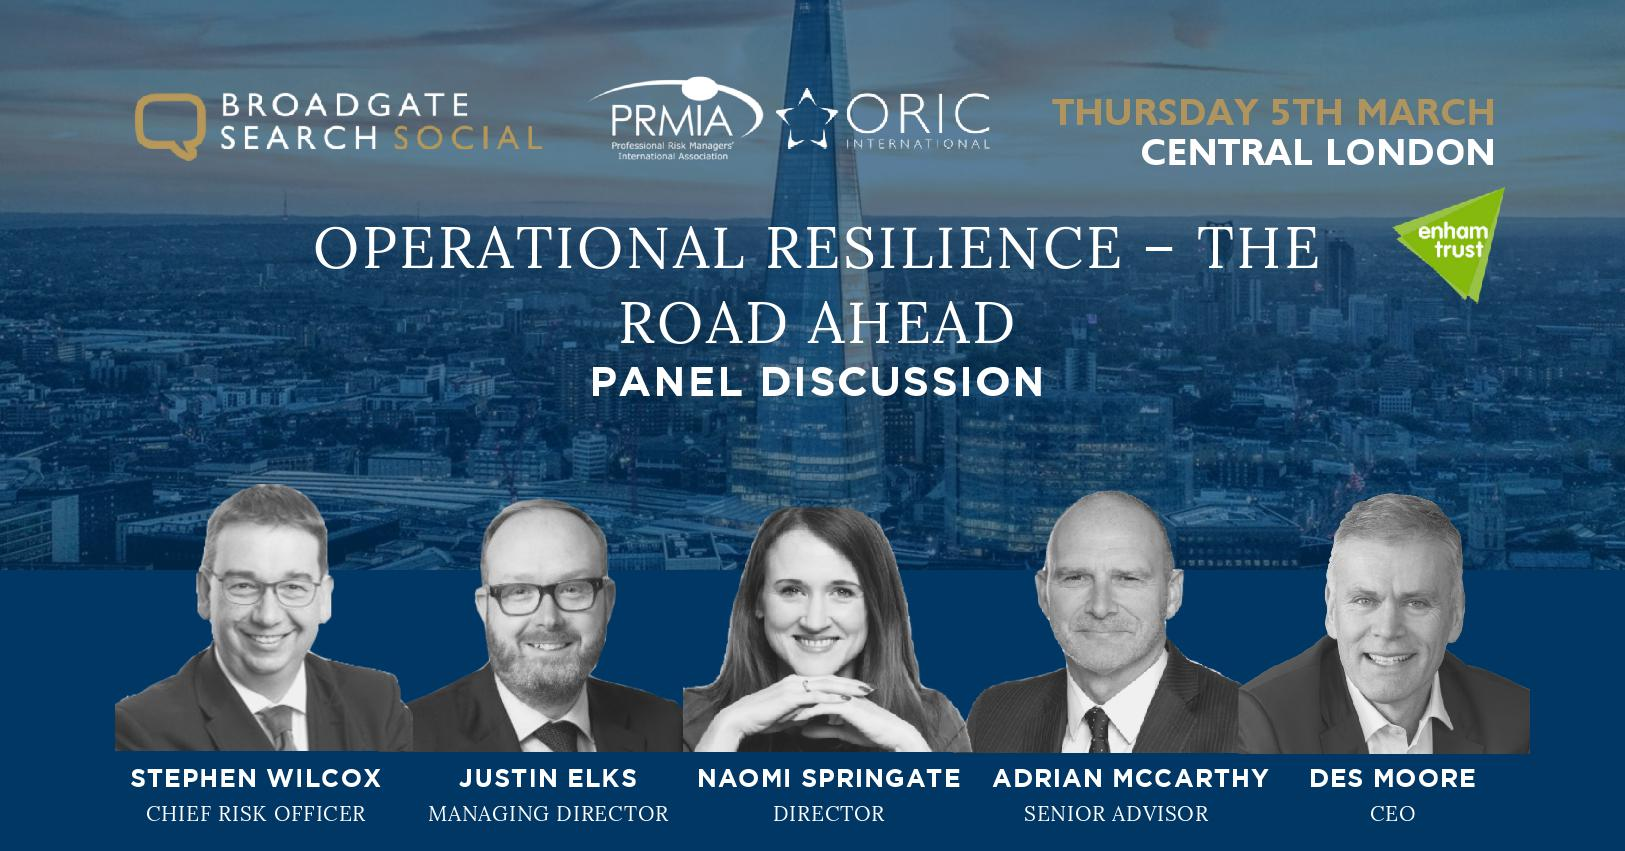 Operational Resilience – The Road Ahead